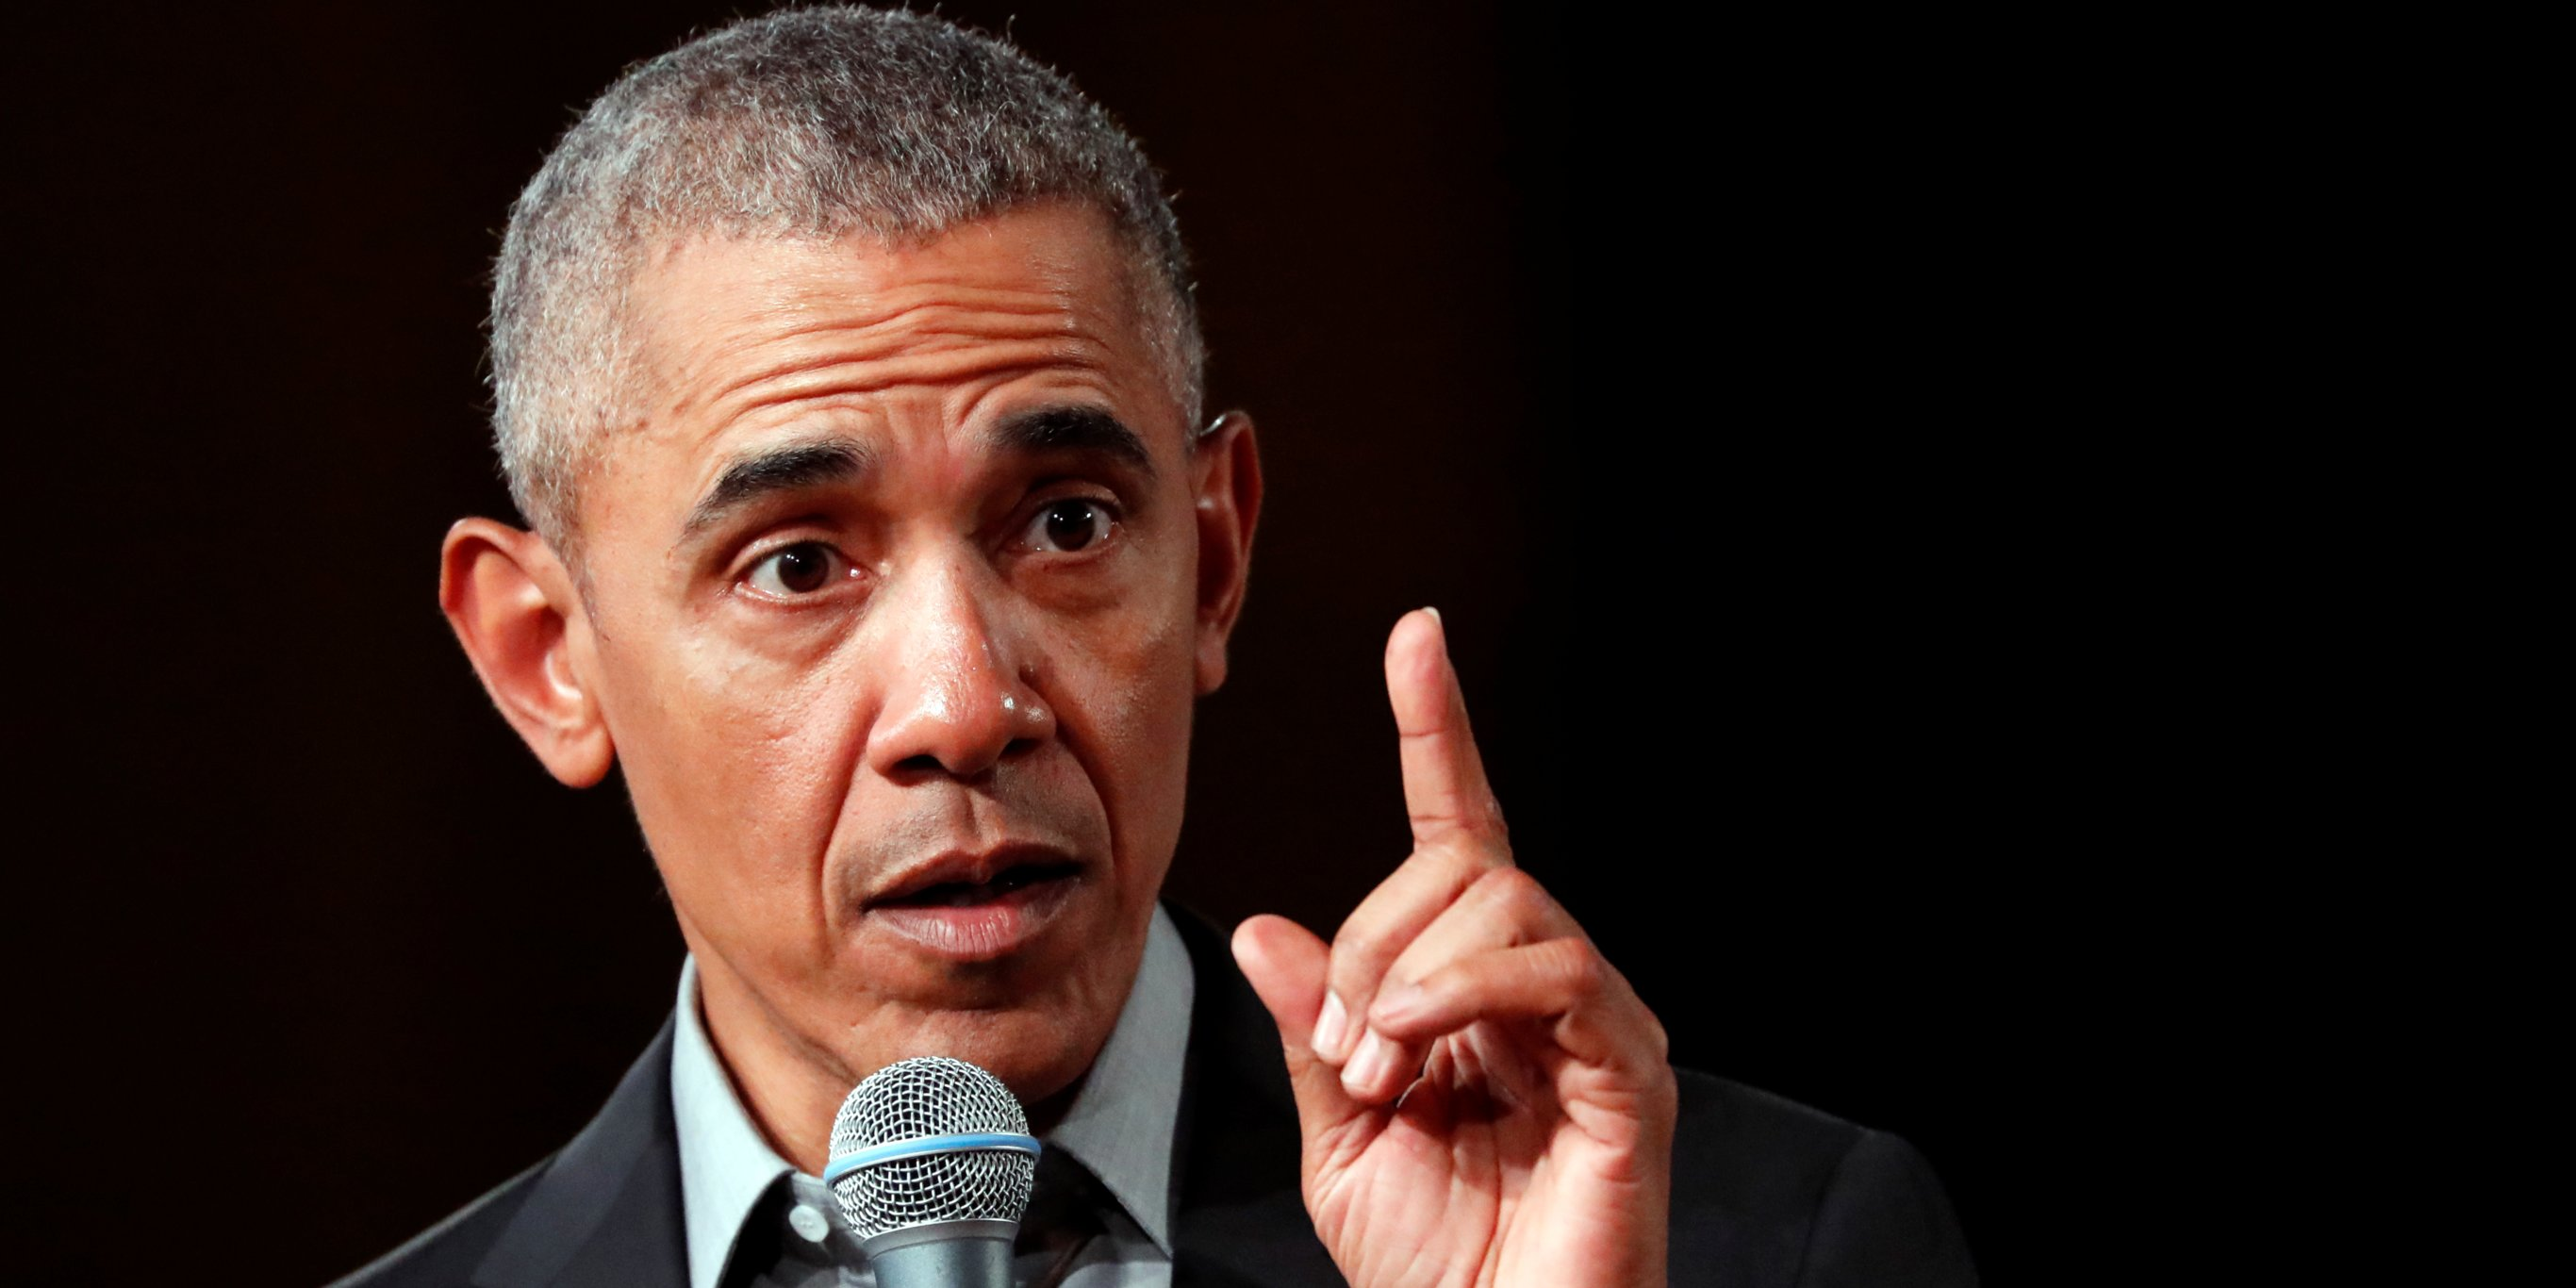 Barack Obama has these 2 tips for making decisions if you ever become president (SPLK)